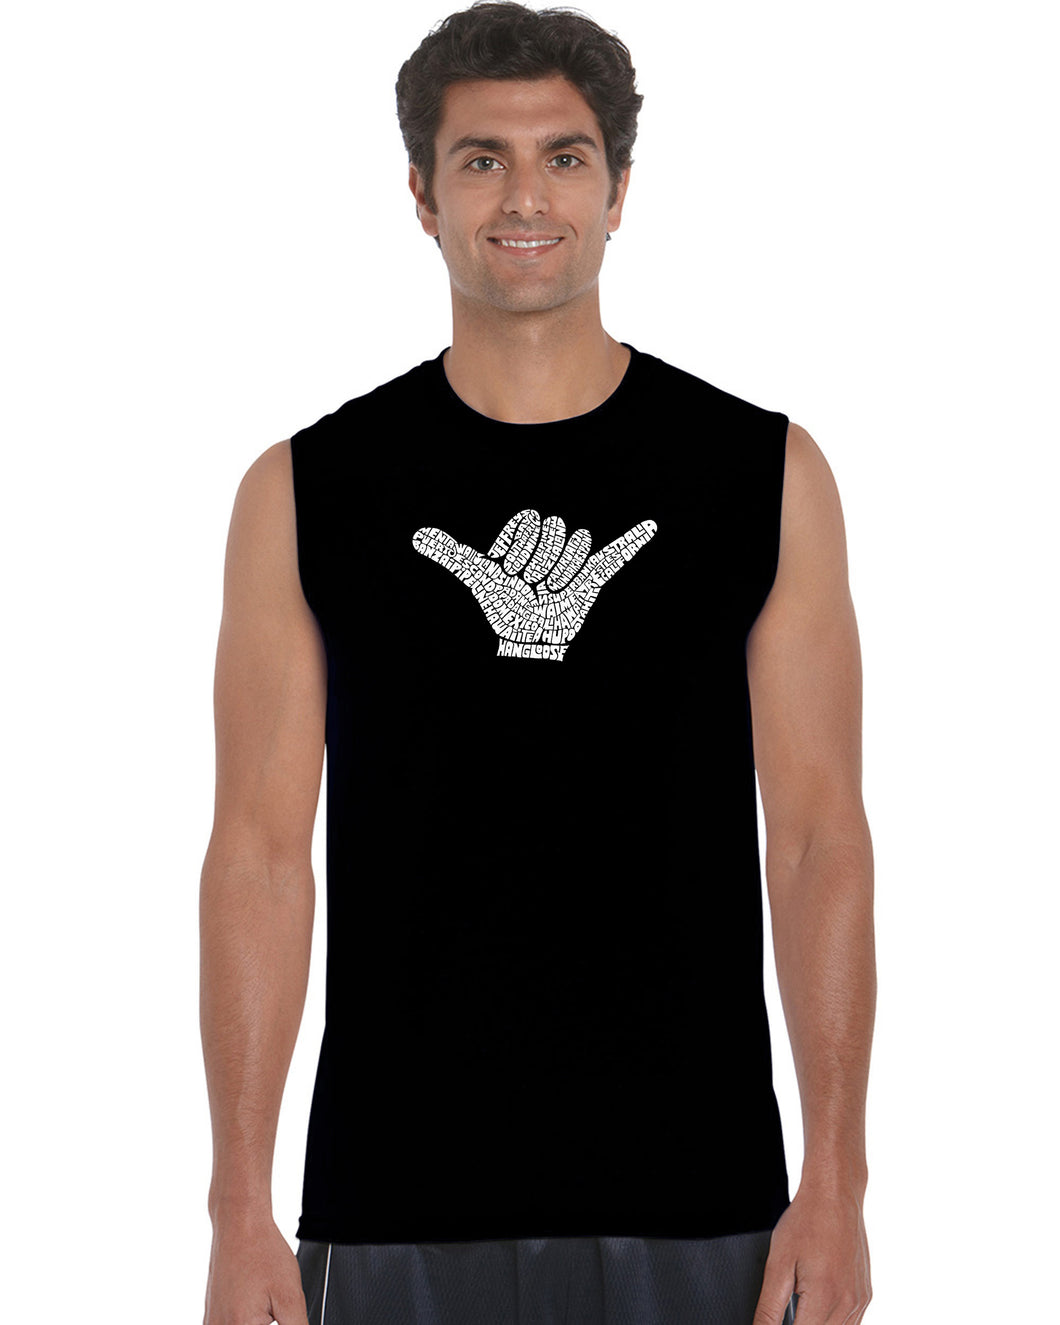 LA Pop Art Men's Word Art Sleeveless T-shirt - TOP WORLDWIDE SURFING SPOTS